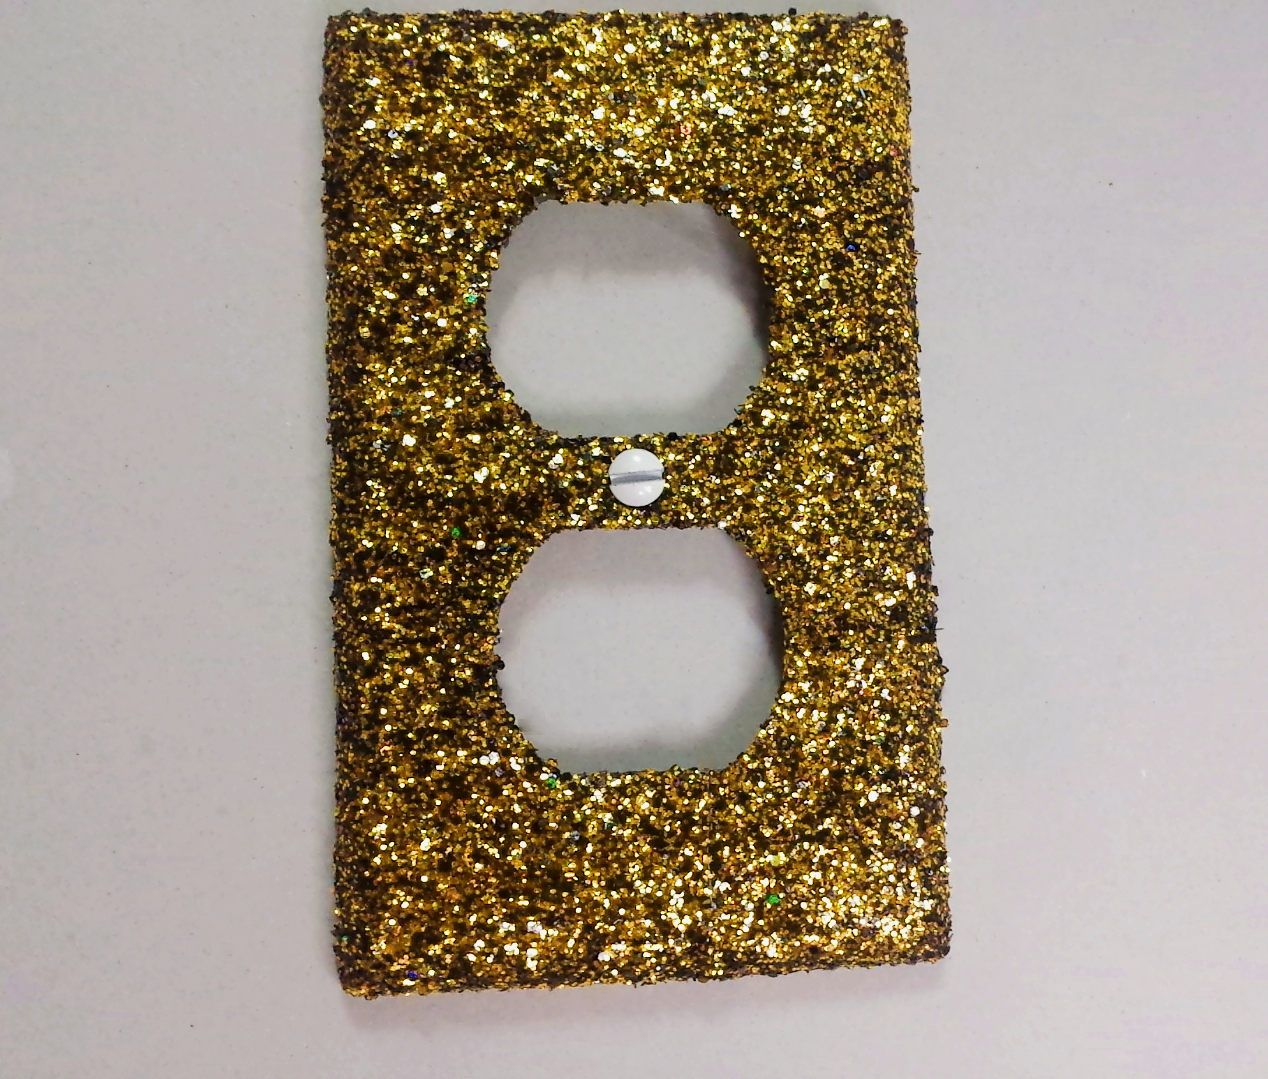 Black Yellow Gold Shiny Glitter Mix Decorative Bling Light Switchplates Outlet Covers Switch Plates Wallplates Wall Plate And Outlets All Ballin On A Budget Dcor By